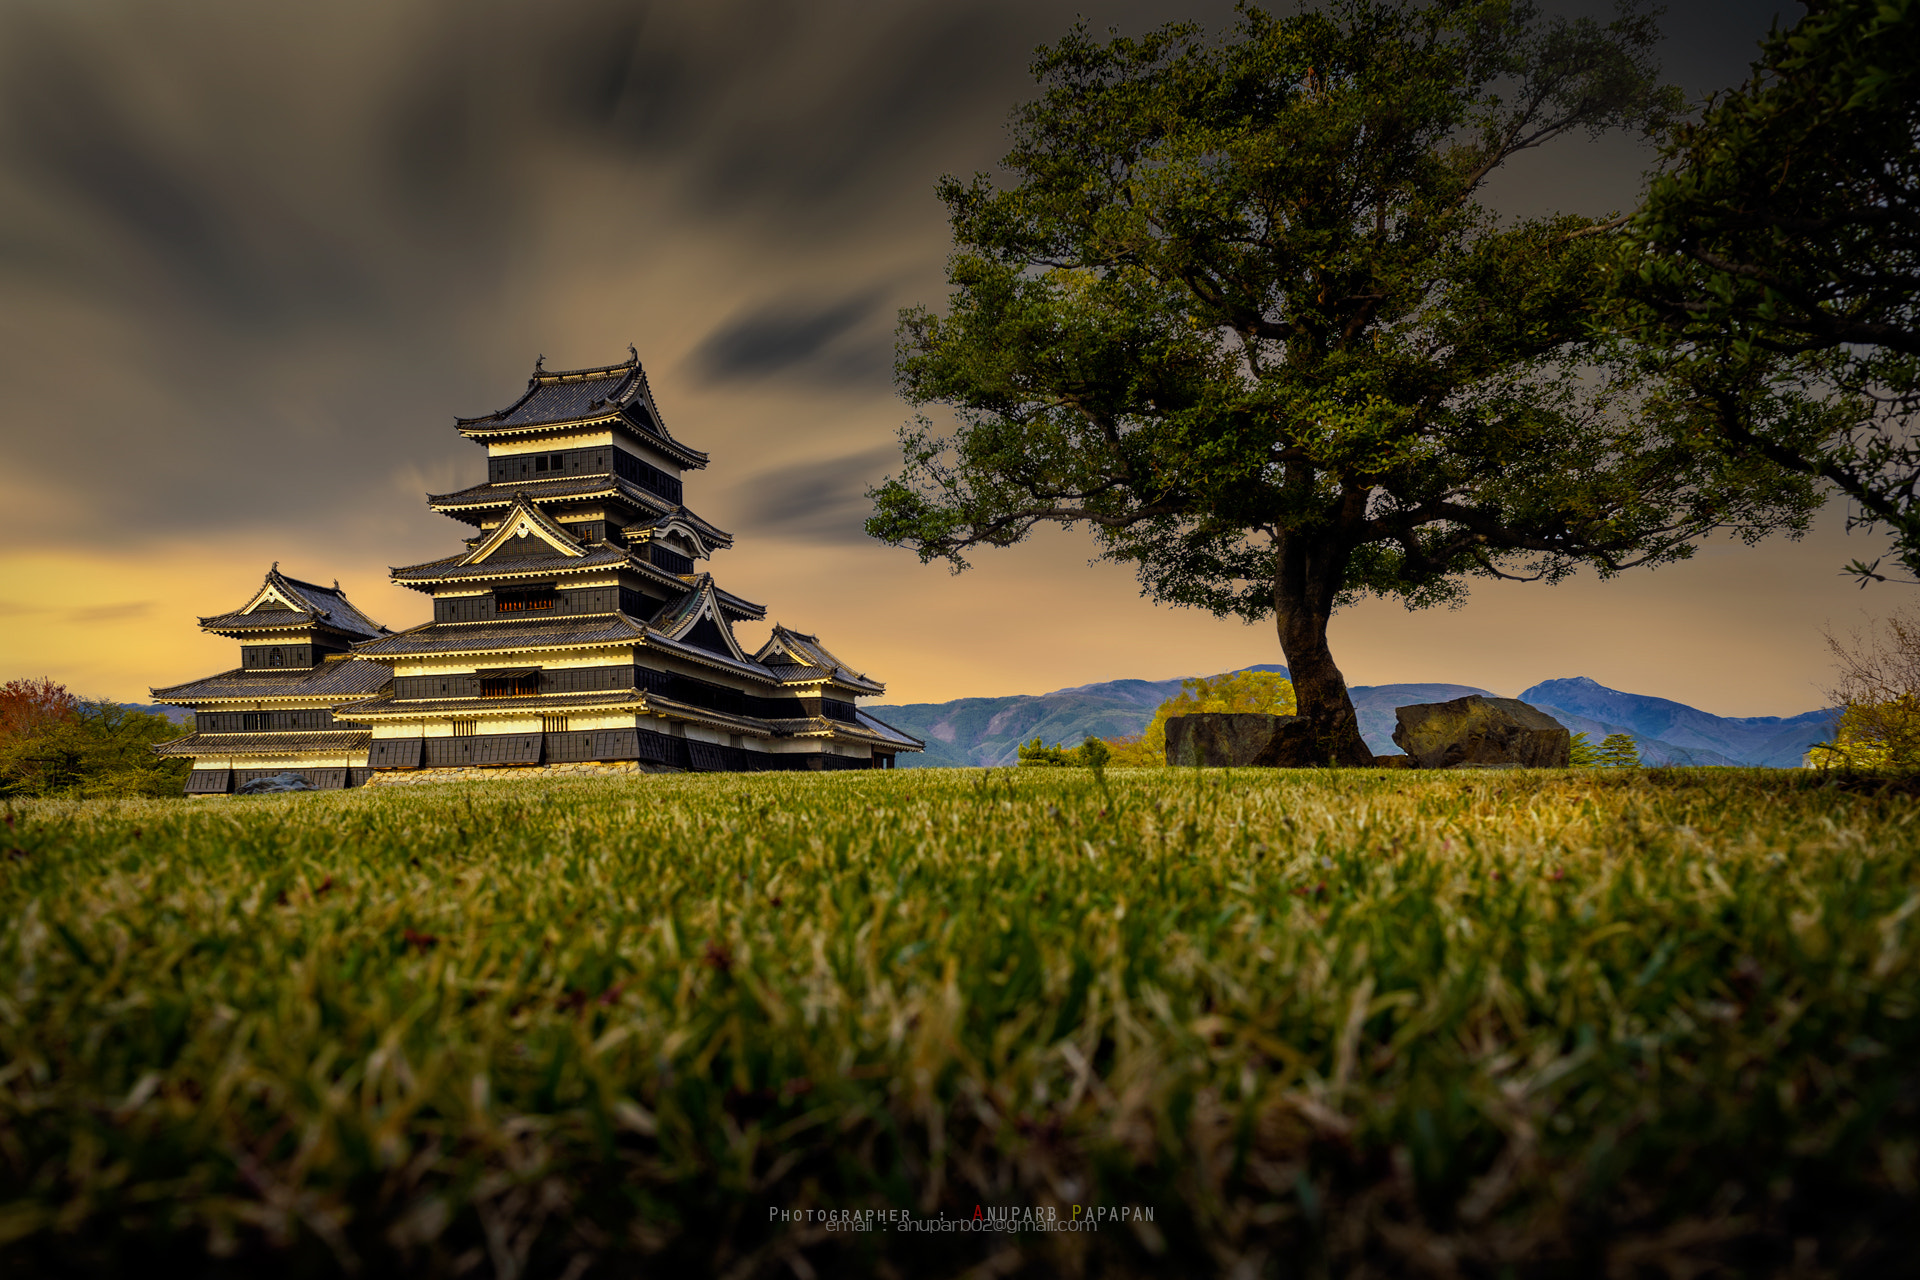 Photograph Matsumoto Castle on the Ground by Anuparb Papapan on 500px